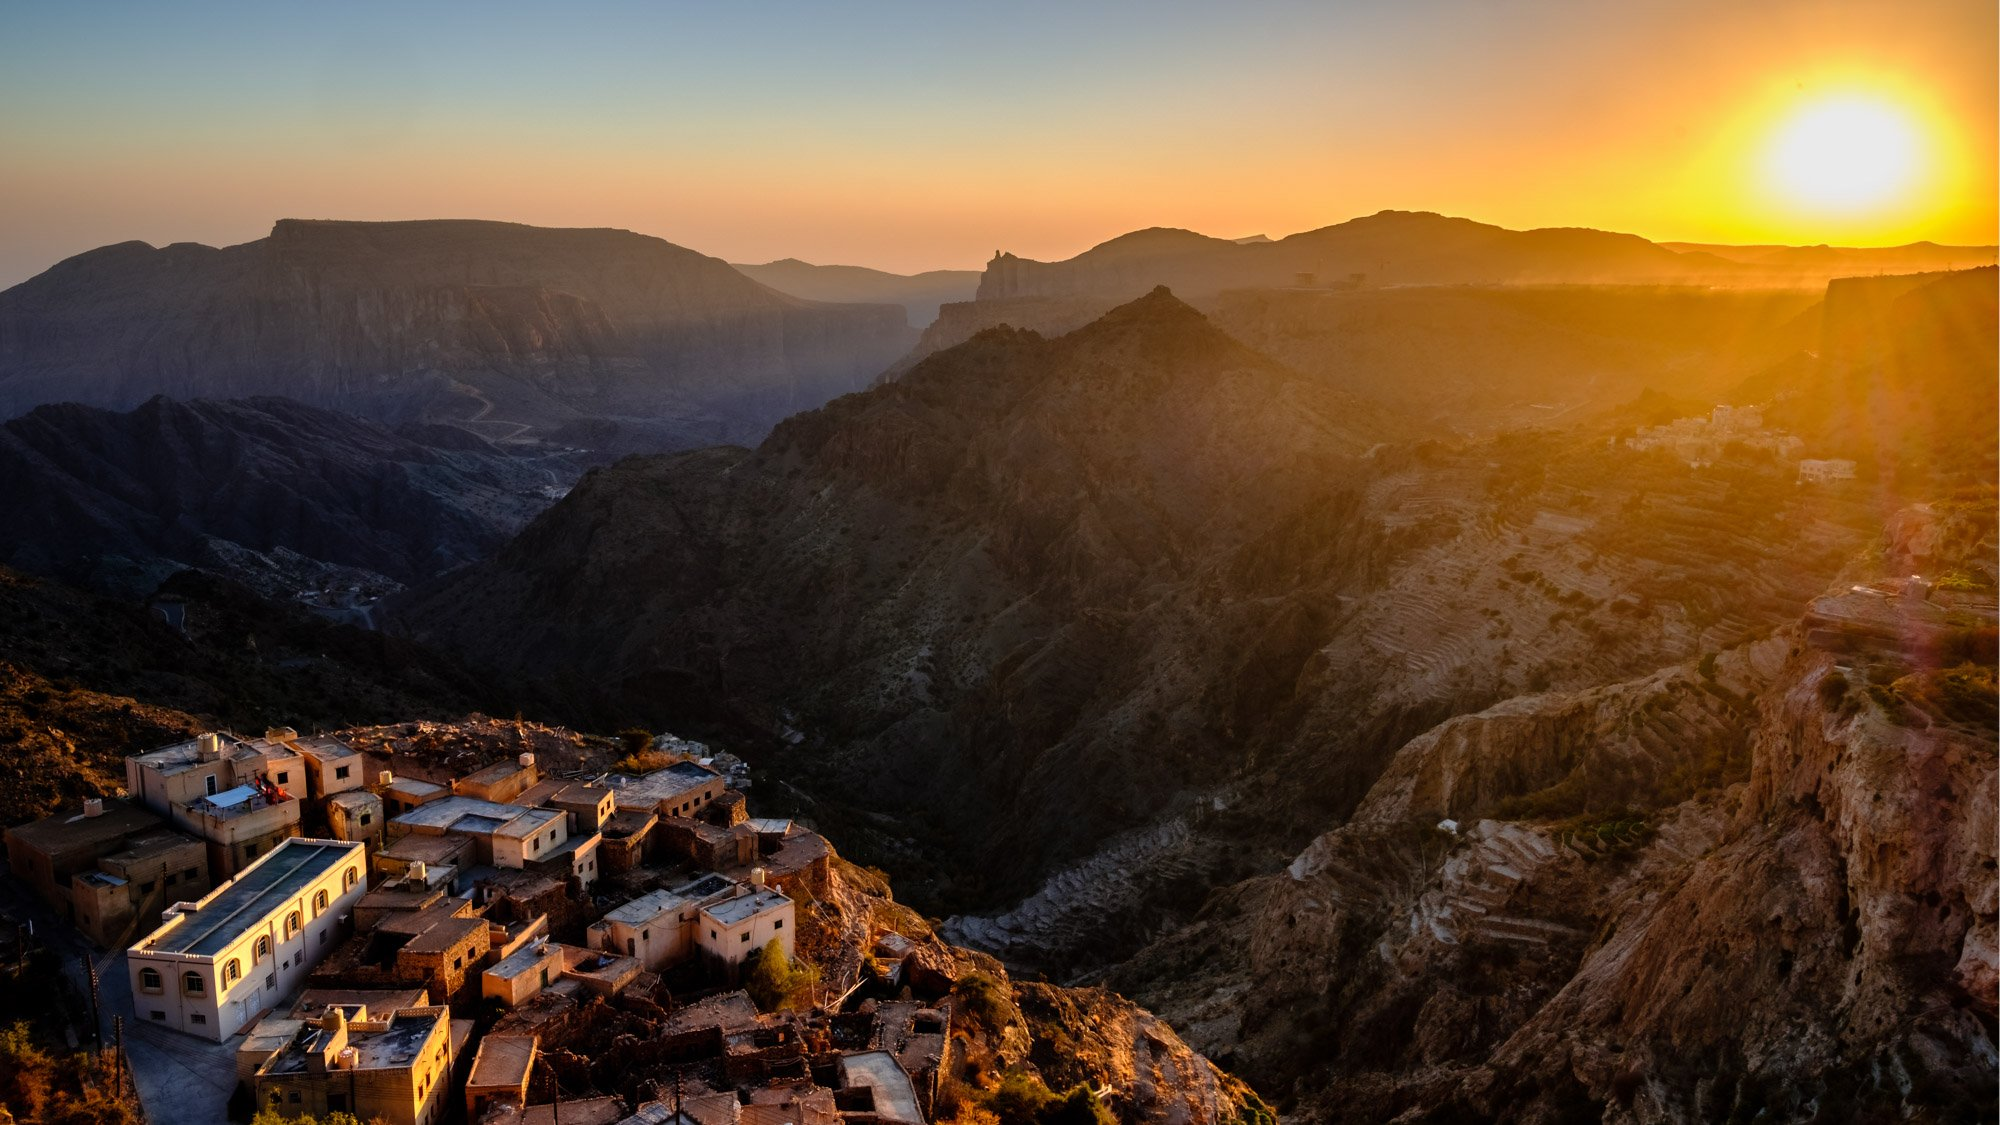 Oman Travelogue, Part 5: from the Jabal Al Akhdar to Muscat, via Sur